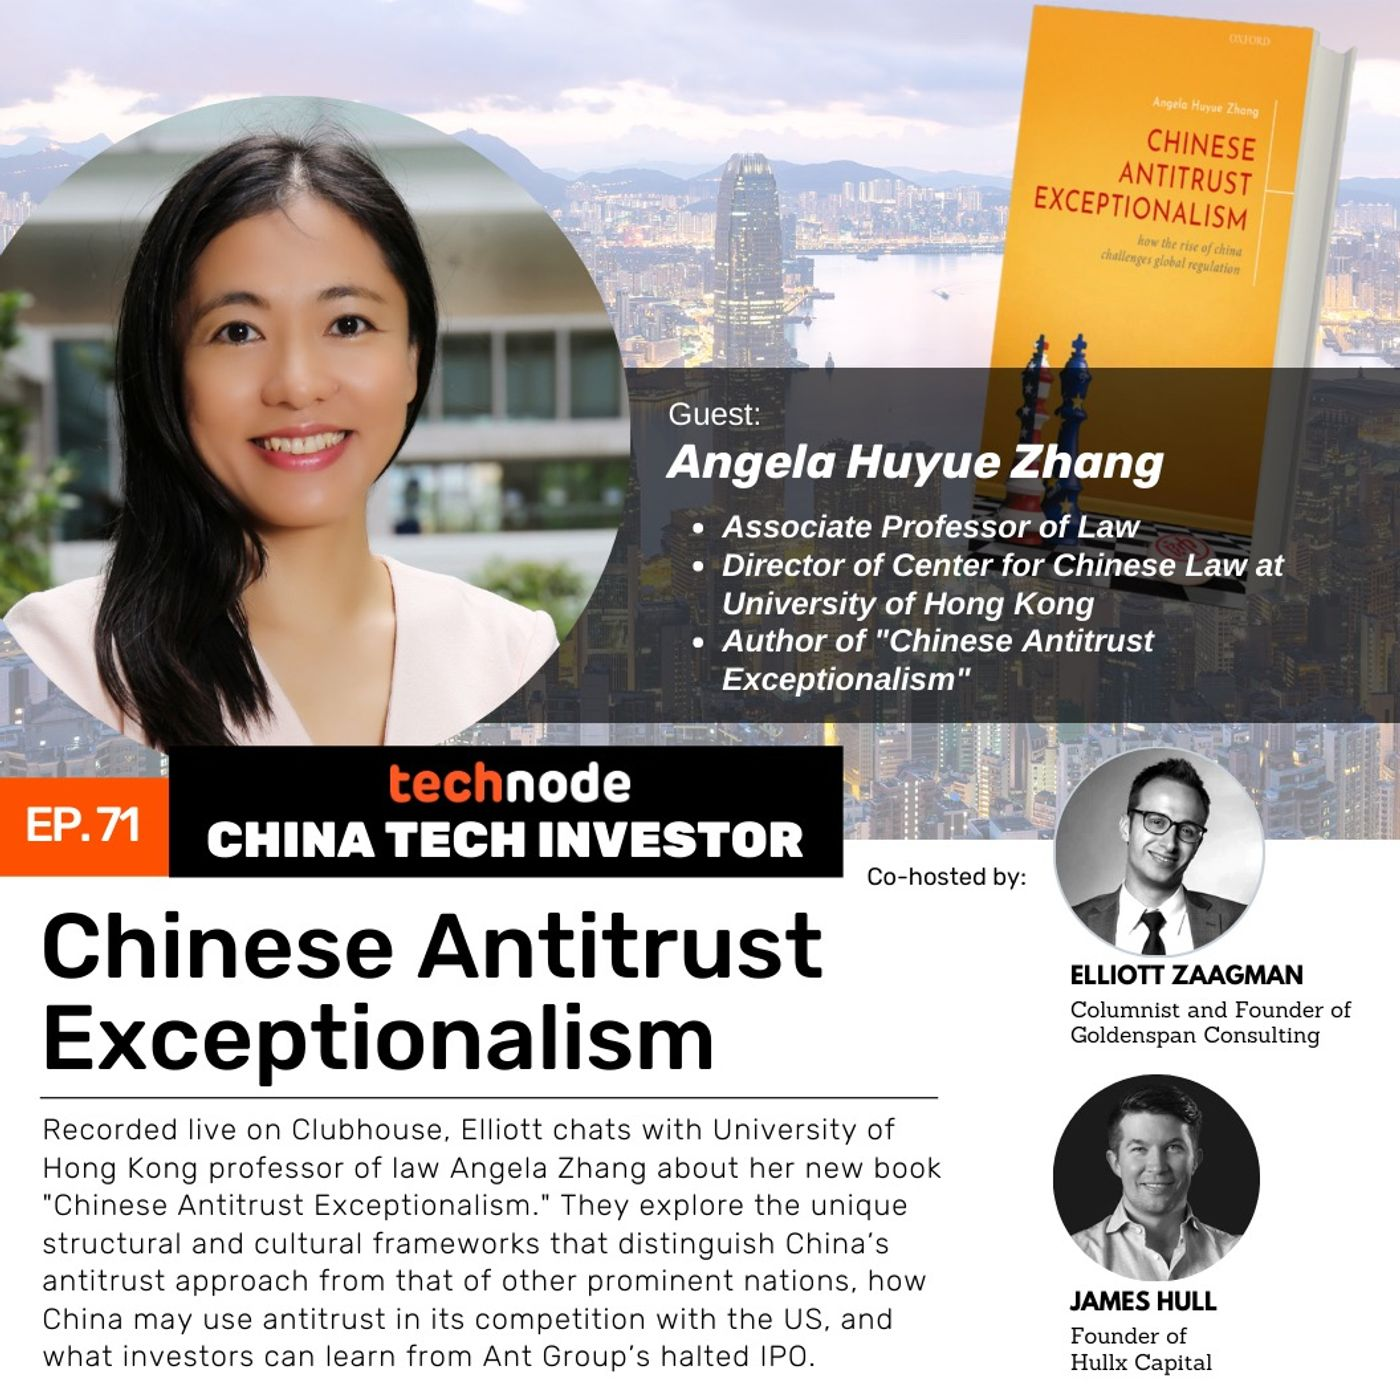 CTI 71: Chinese Antritrust Exceptionalism, with Angela Huyue Zhang